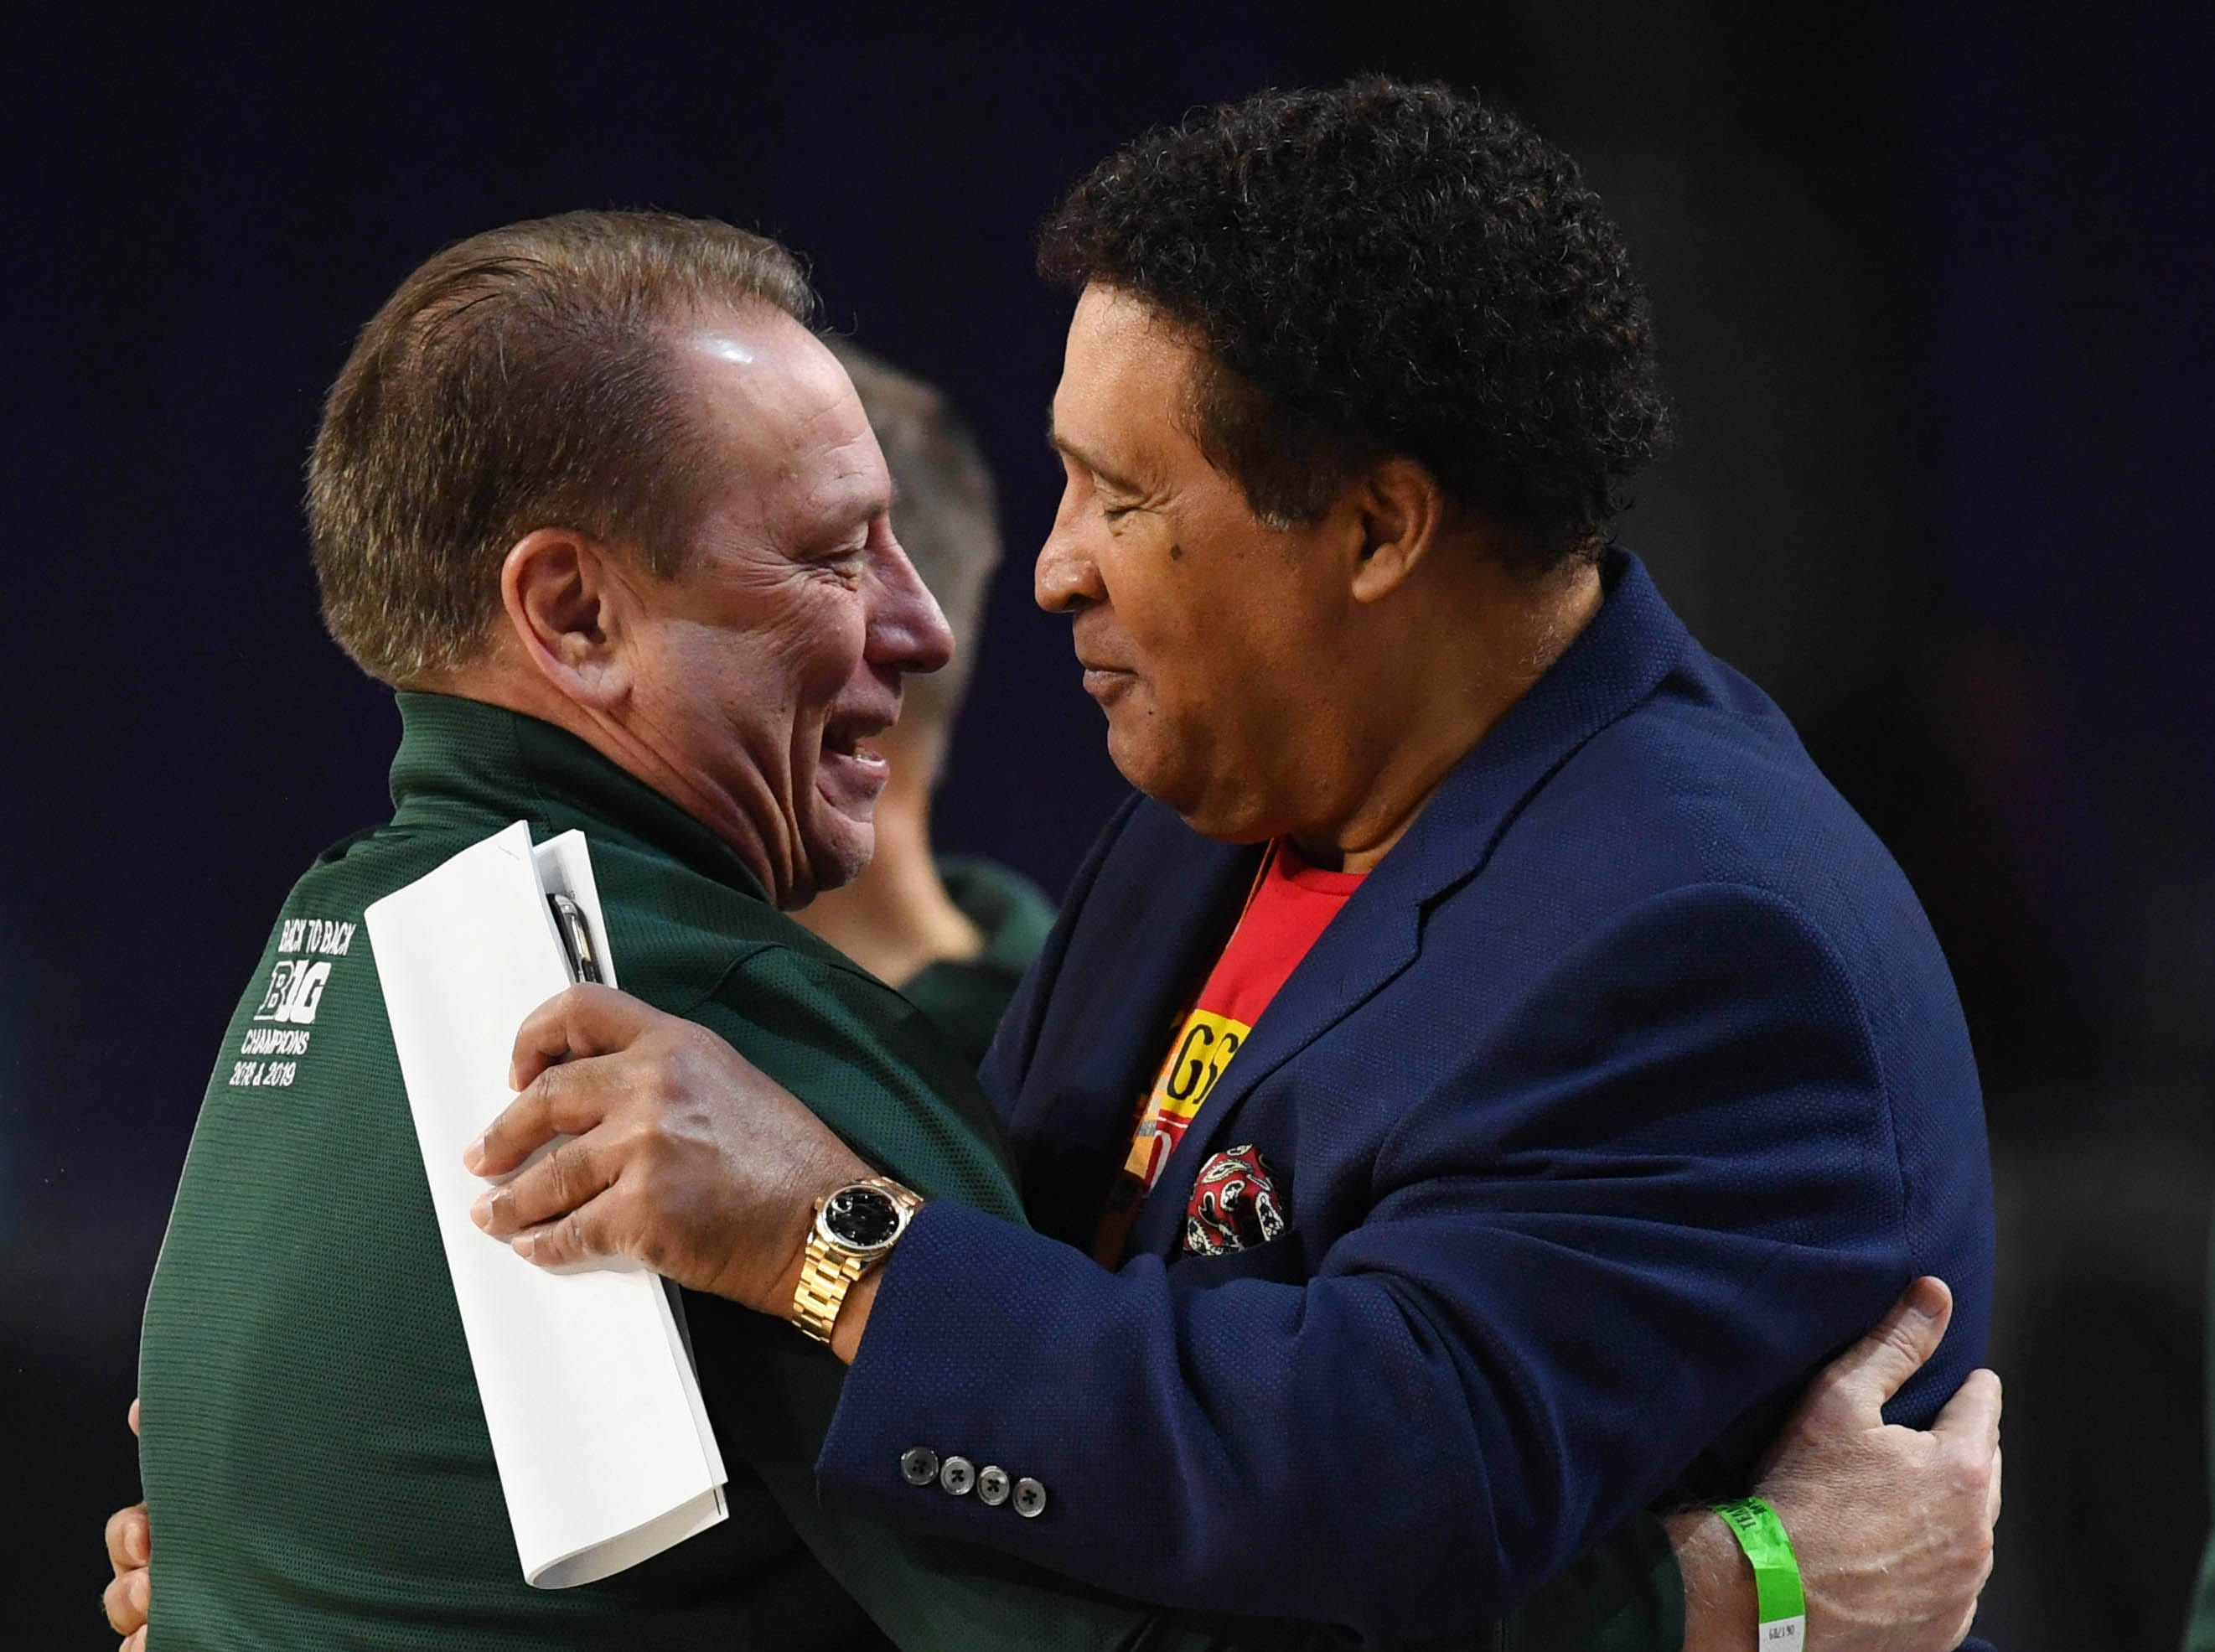 Apr 5, 2019; Minneapolis, MN, USA; Michigan State Spartans head coach Tom Izzo (left) greets CBS commentator Greg Gumbel during practice for the 2019 men's Final Four at US Bank Stadium. Mandatory Credit: Robert Deutsch-USA TODAY Sports